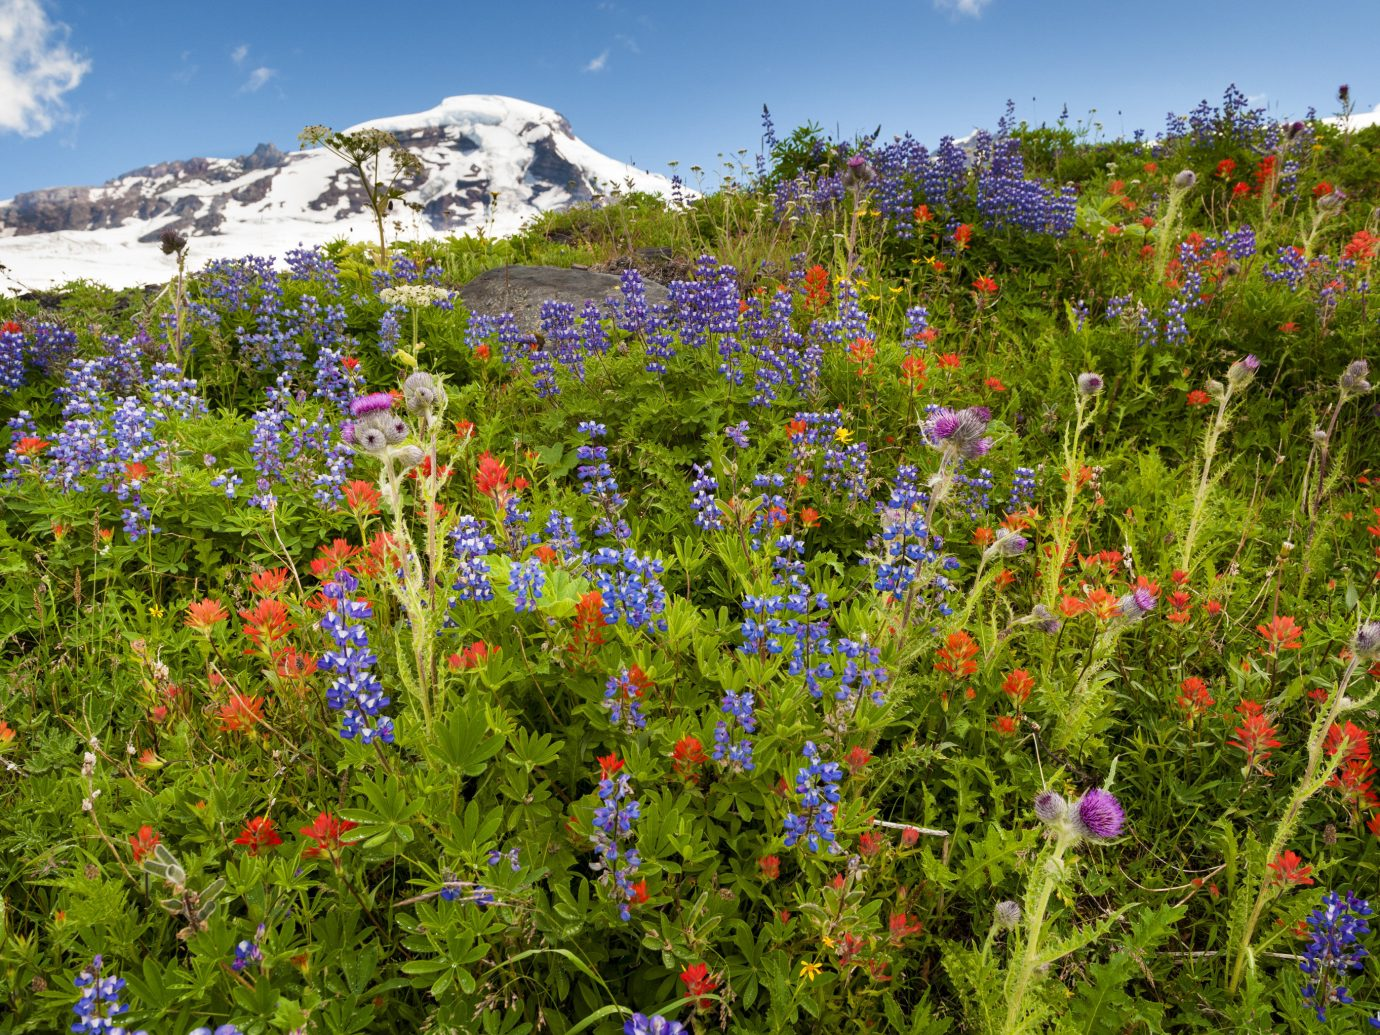 Trip Ideas sky flower outdoor habitat Nature vegetation flora meadow natural environment plant colorful ecosystem lupin grassland wildflower botany prairie land plant bluebonnet Garden woodland flowering plant shrub surrounded colored